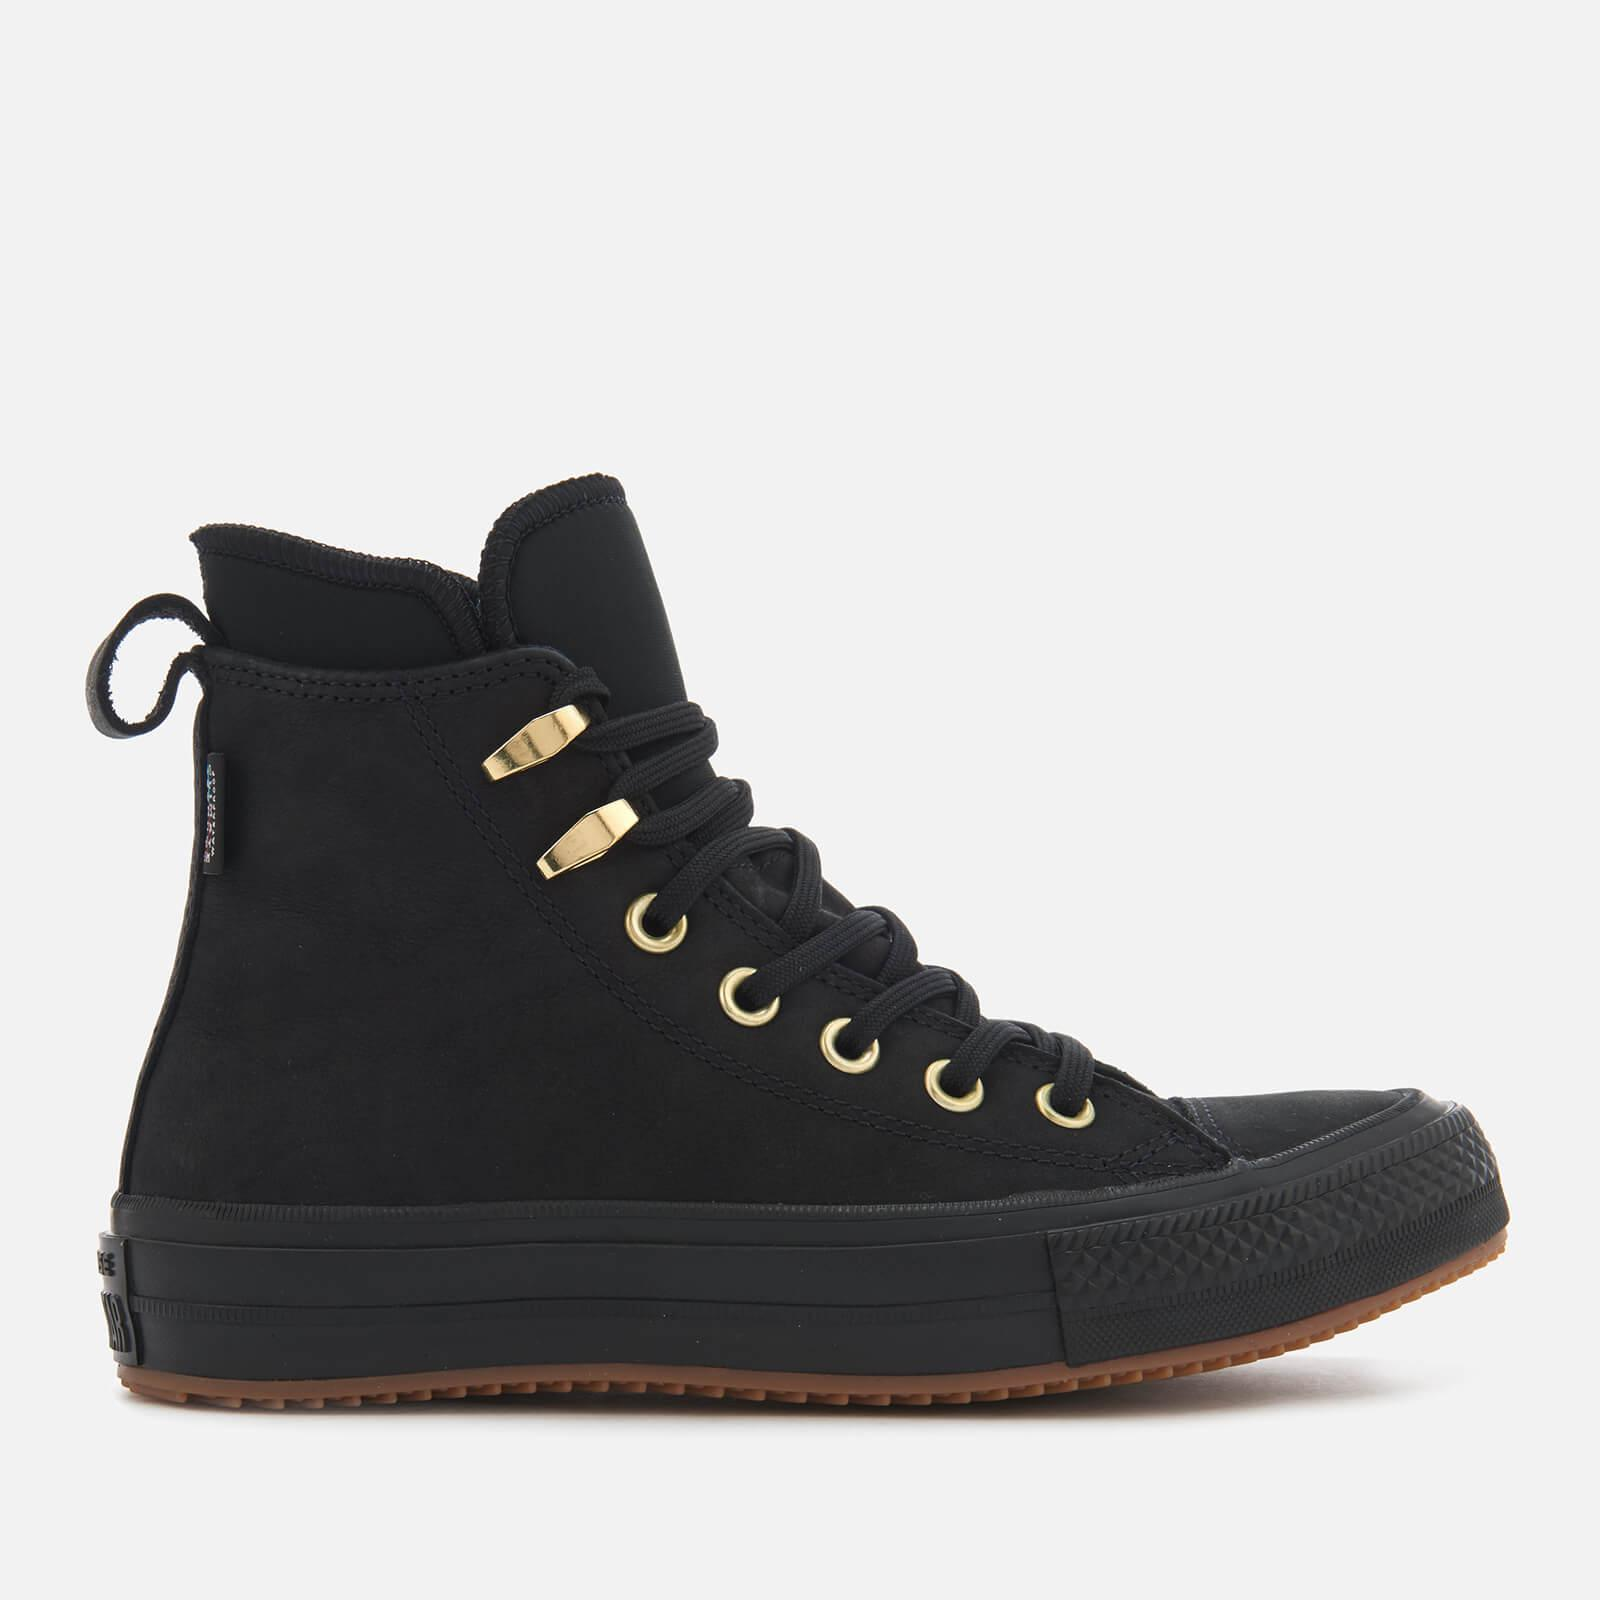 Lyst - Converse Chuck Taylor All Star Waterproof Boots in Black ccc904e83